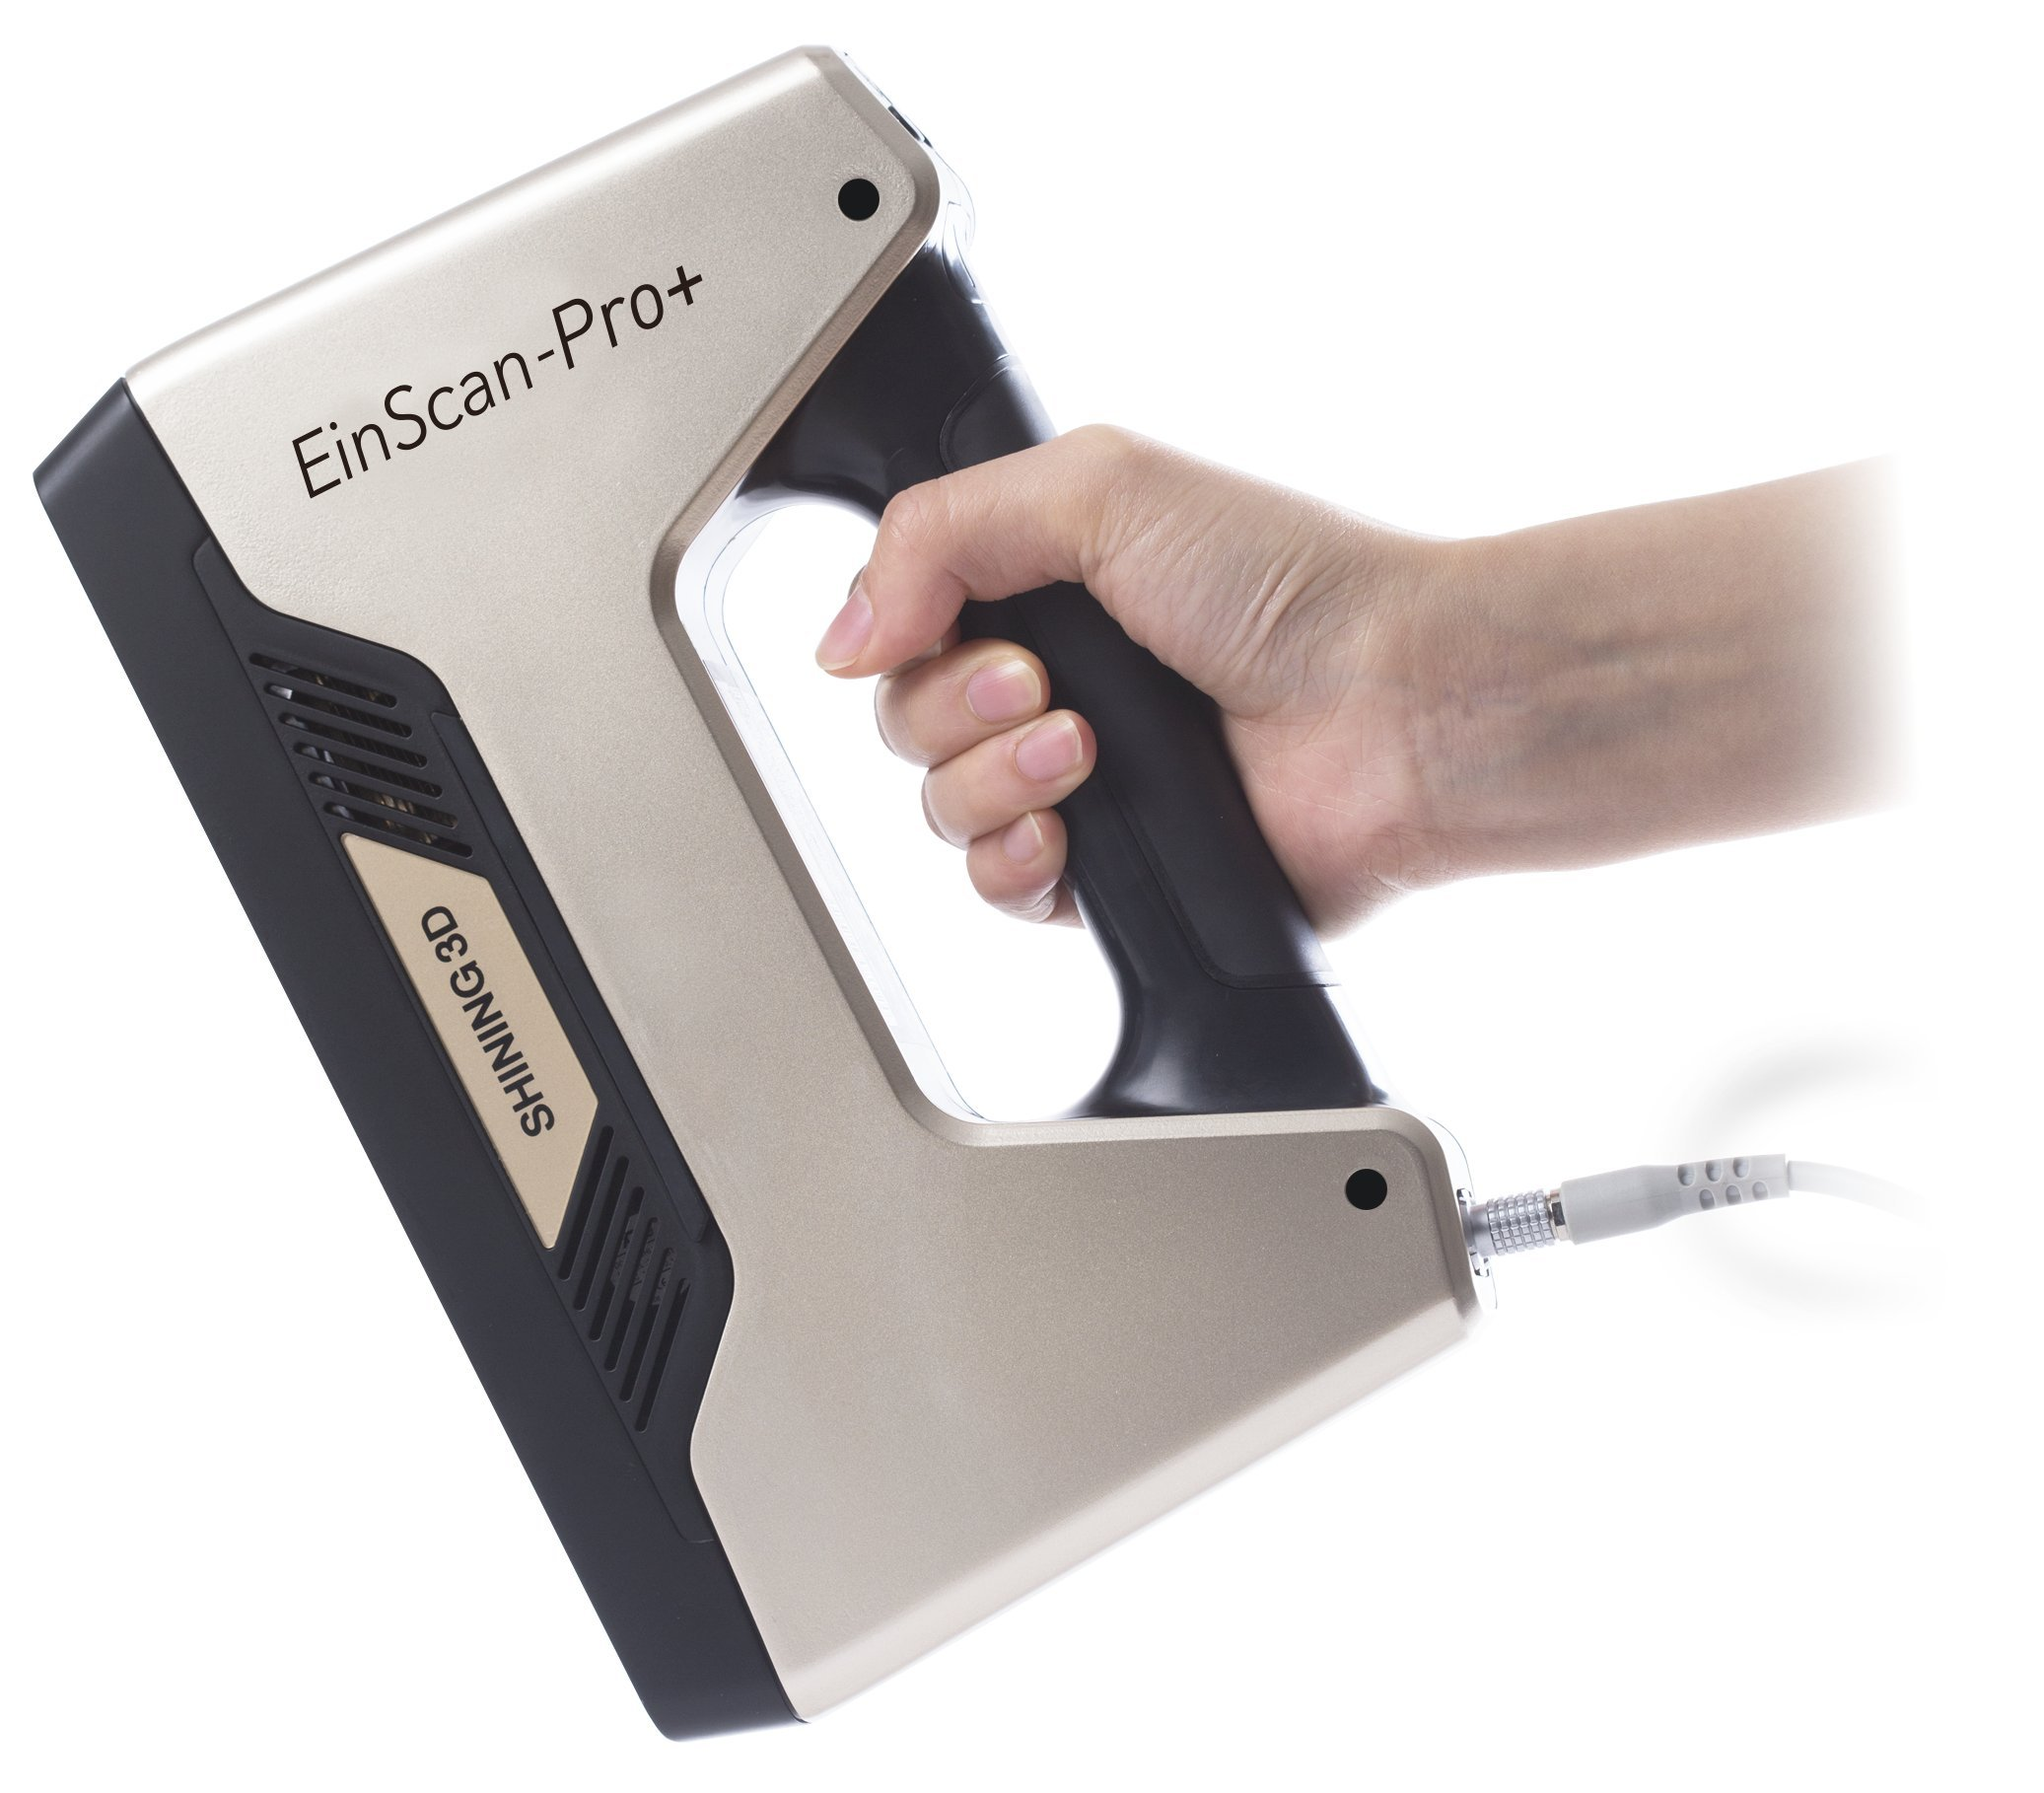 EinScan-Pro+ with R2 Function Multi-Functional Handheld 3D Scanner, White Light, 4 Scan Modes, 0.05 mm Accuracy 550,000 Points/Sec Scan Speed, Industrial Level Handheld 3D Scanner for Design Research